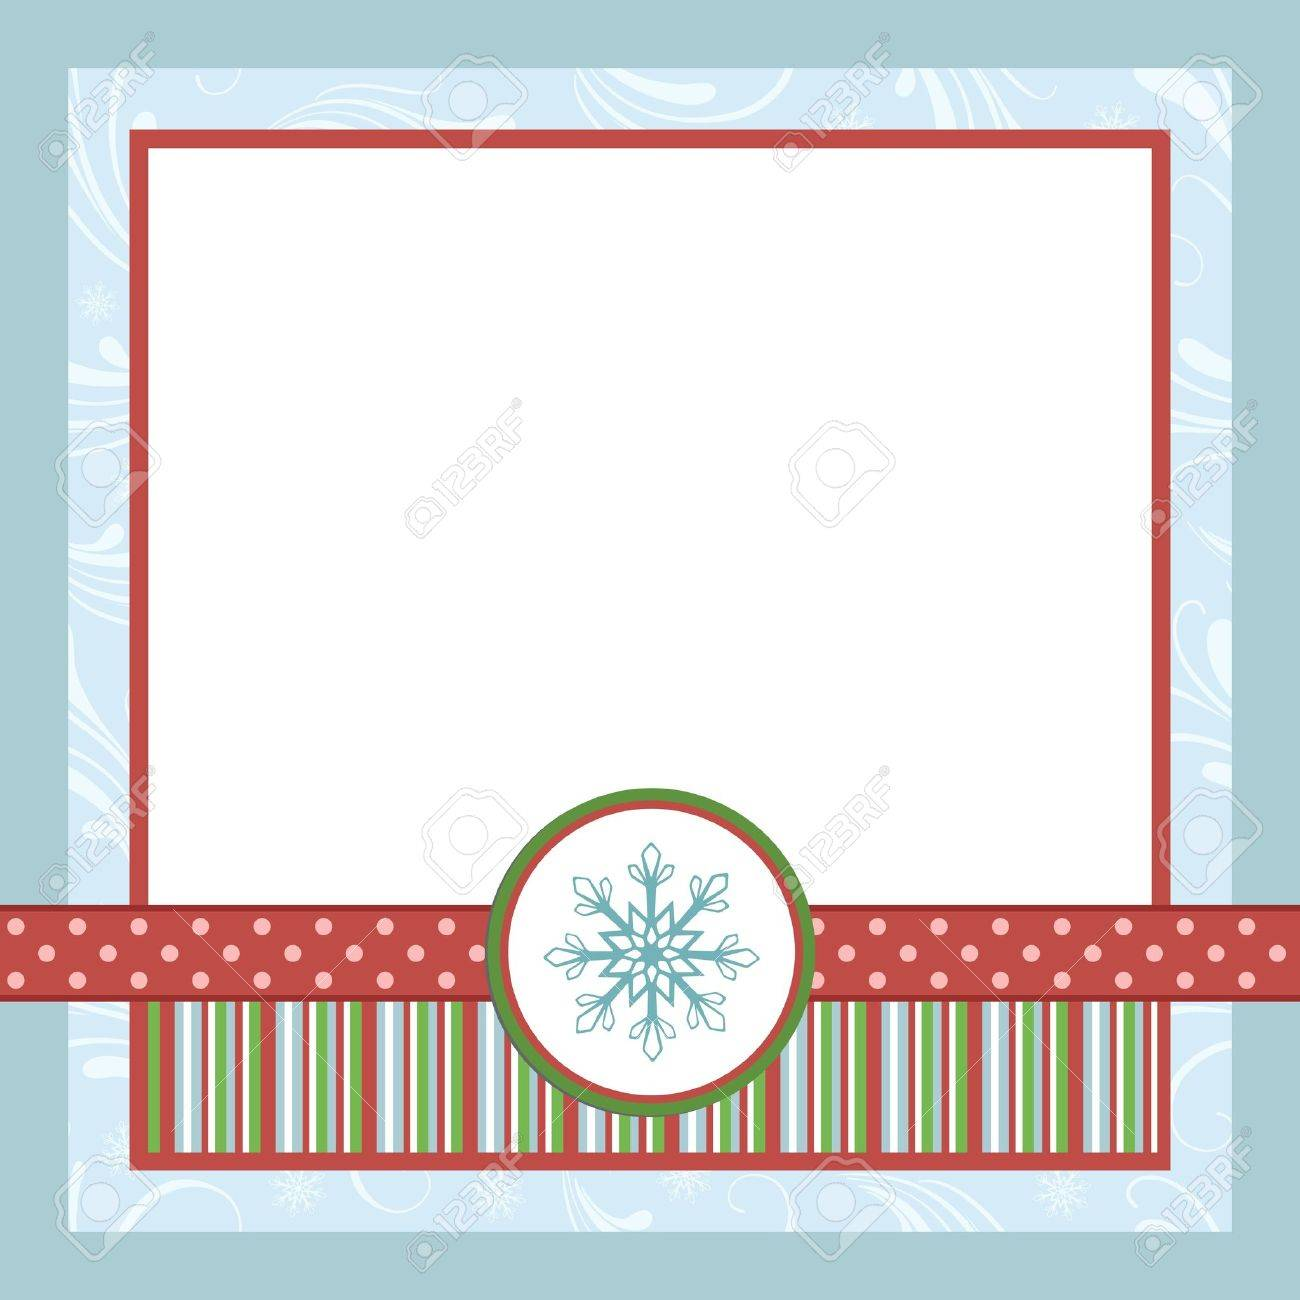 Free Blank Templates For Greeting Cards